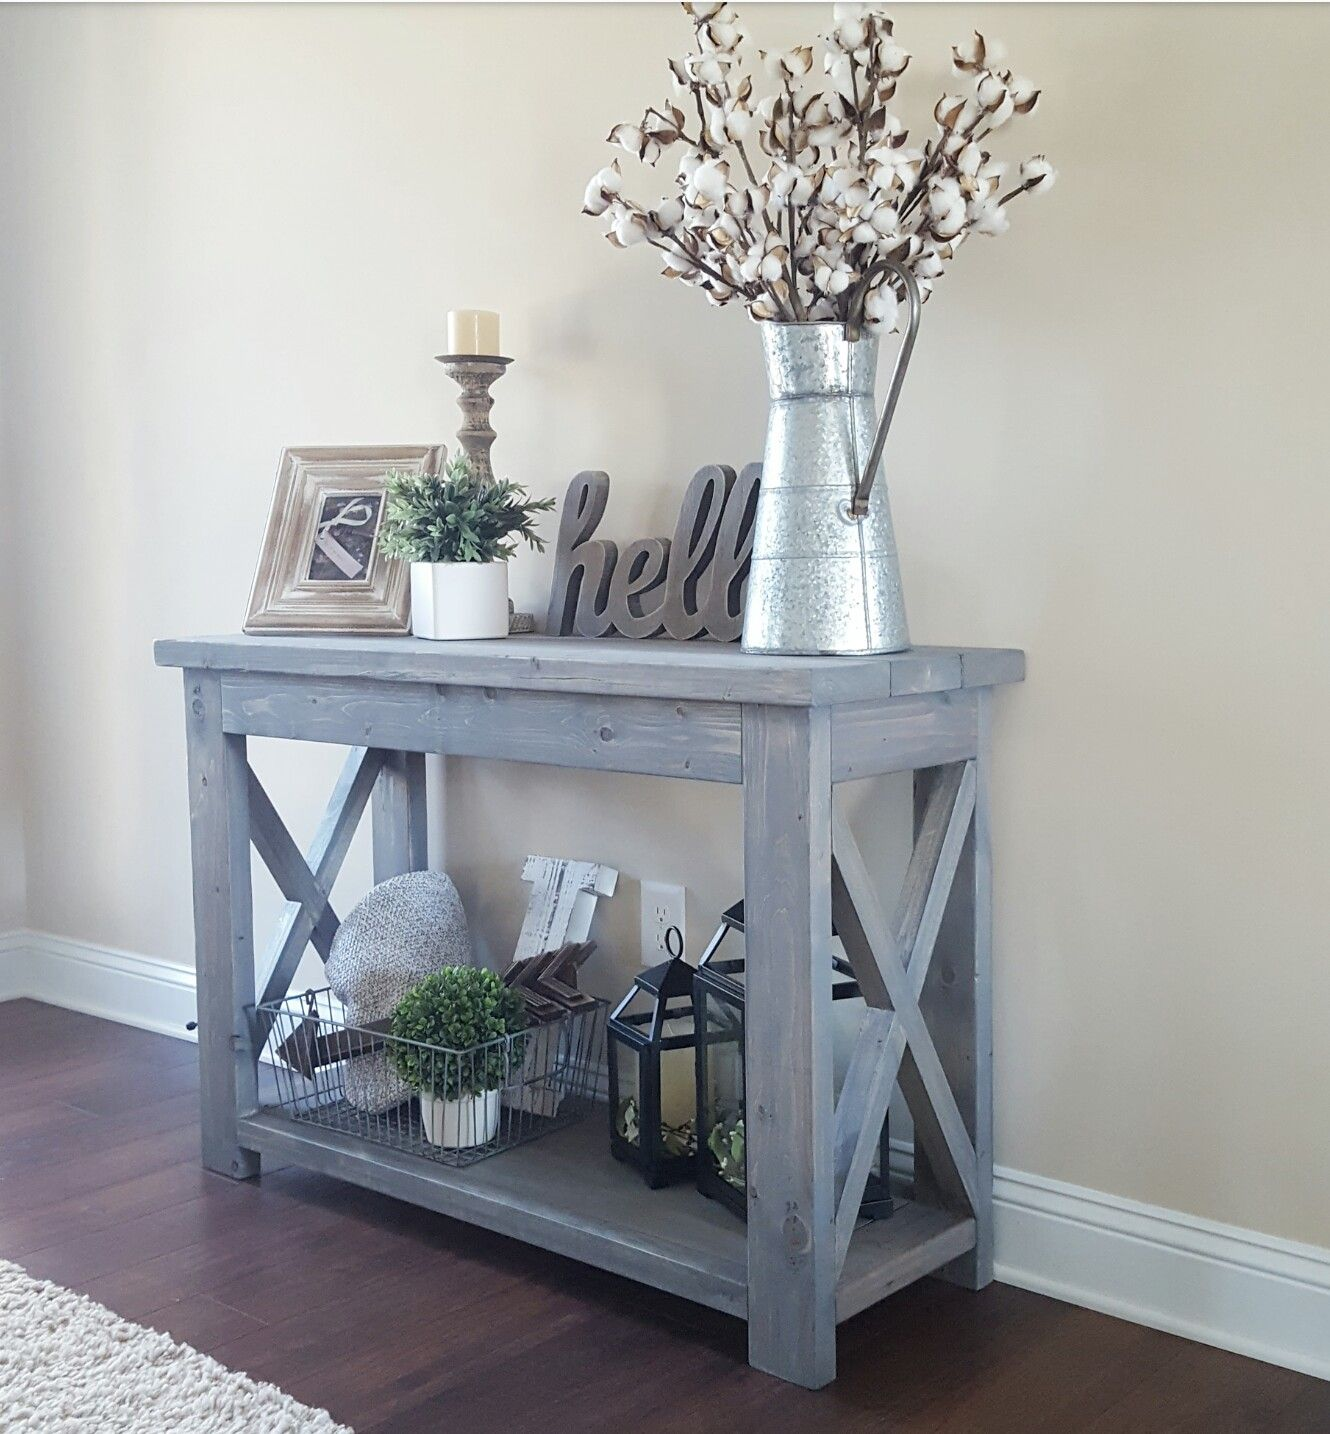 Modified Ana Whites Rustic X Console Table, And Used Minwax Classic Gray  Stain Cute Entry Way Table!